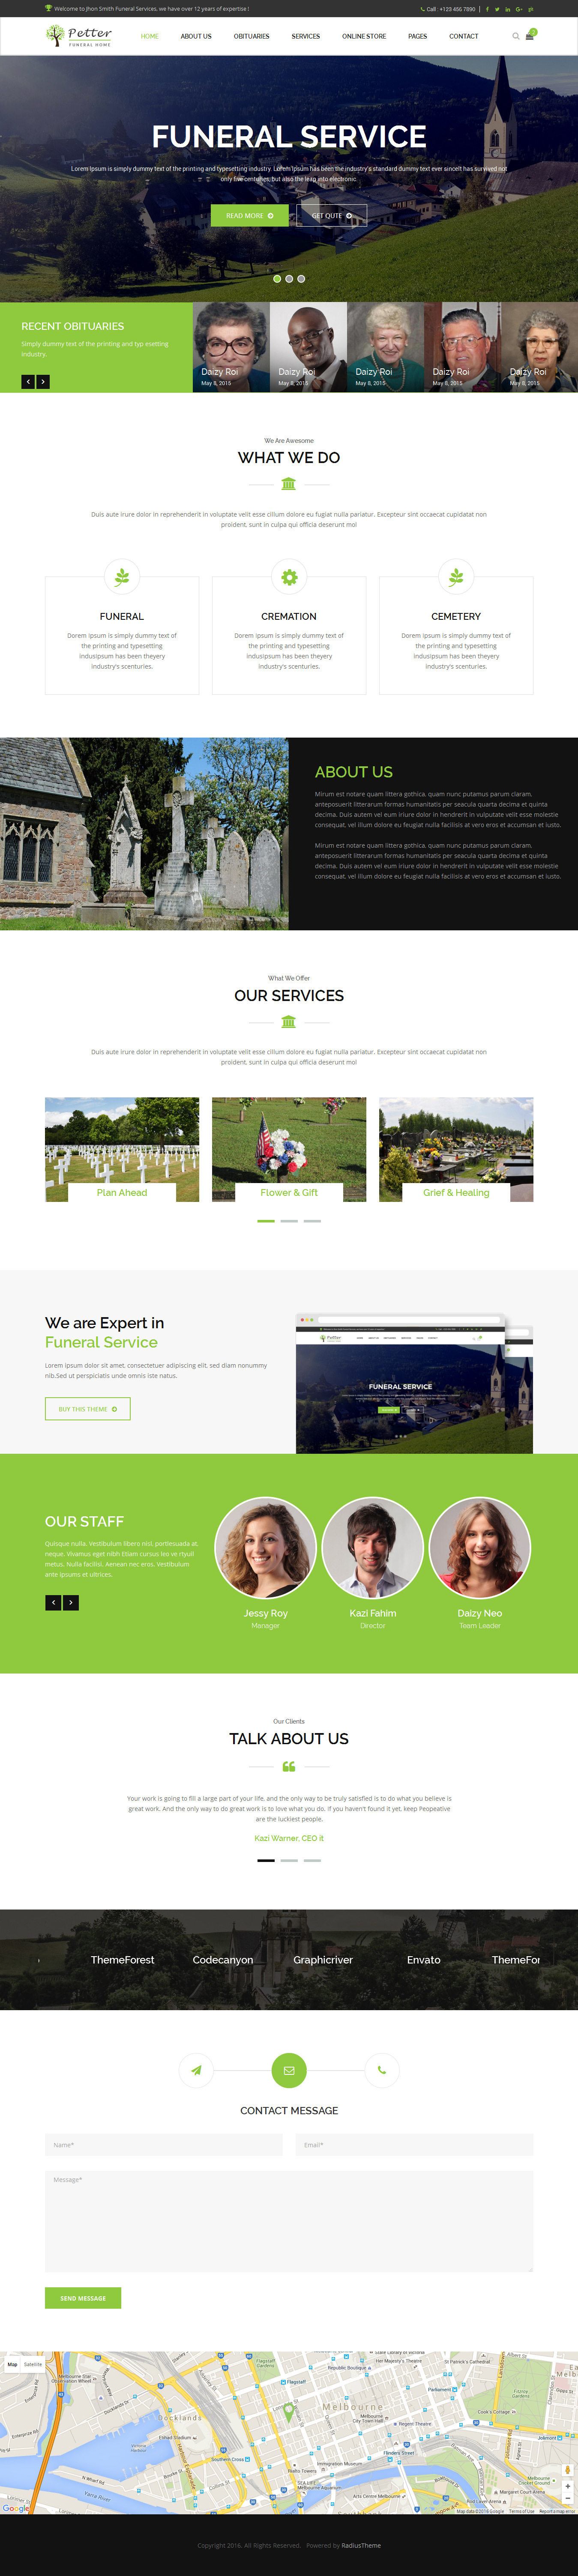 Petter | Funeral Service HTML5 Responsive Template by RadiusTheme